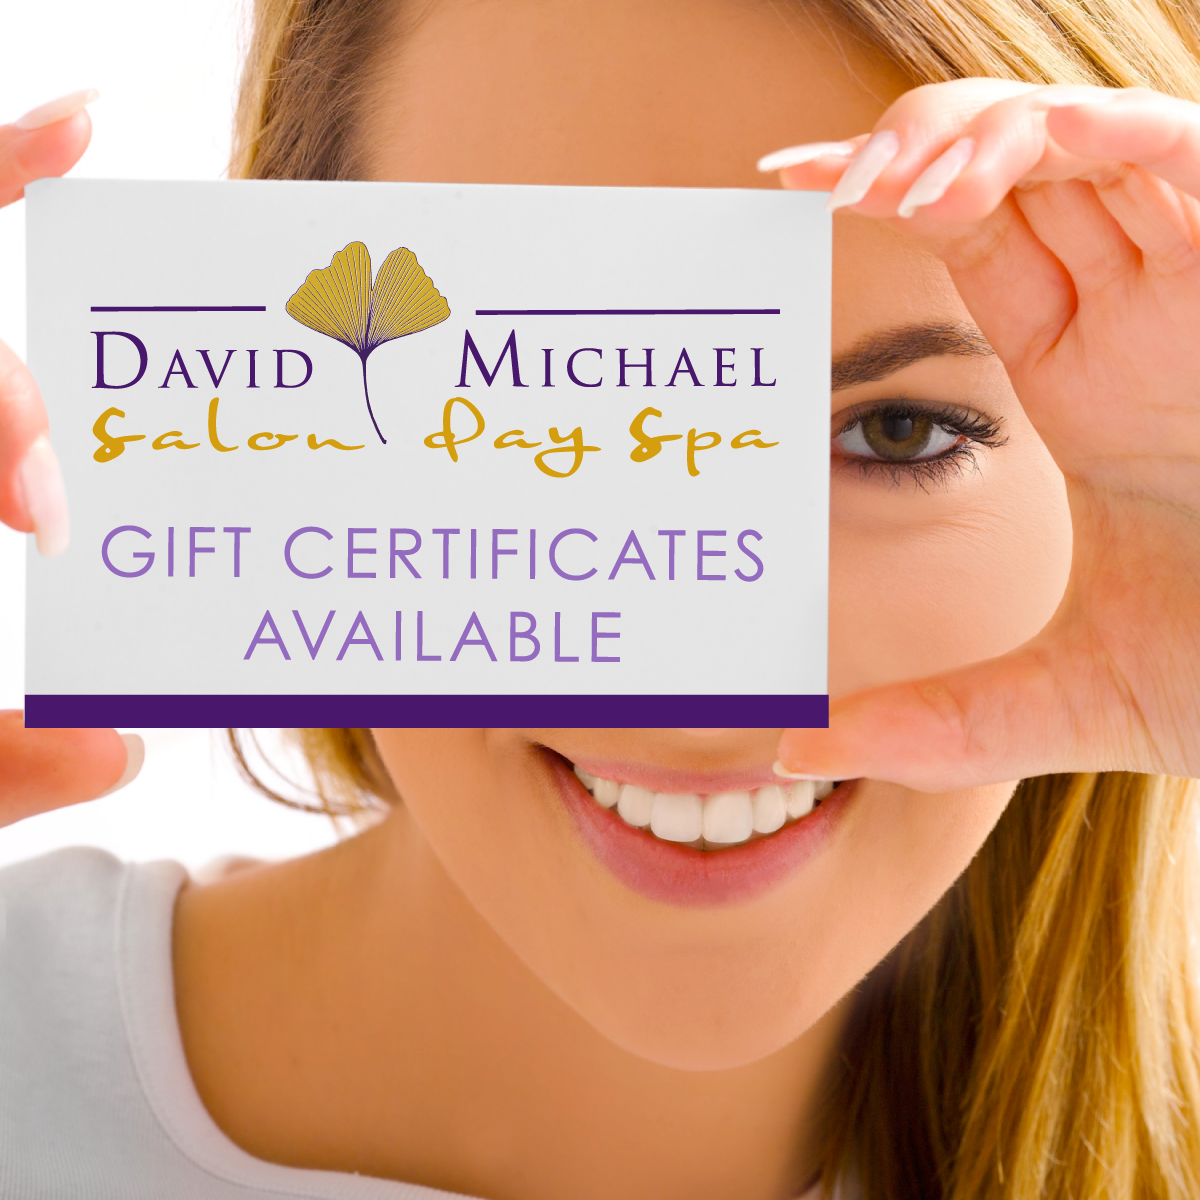 Gift certificates and gift packages